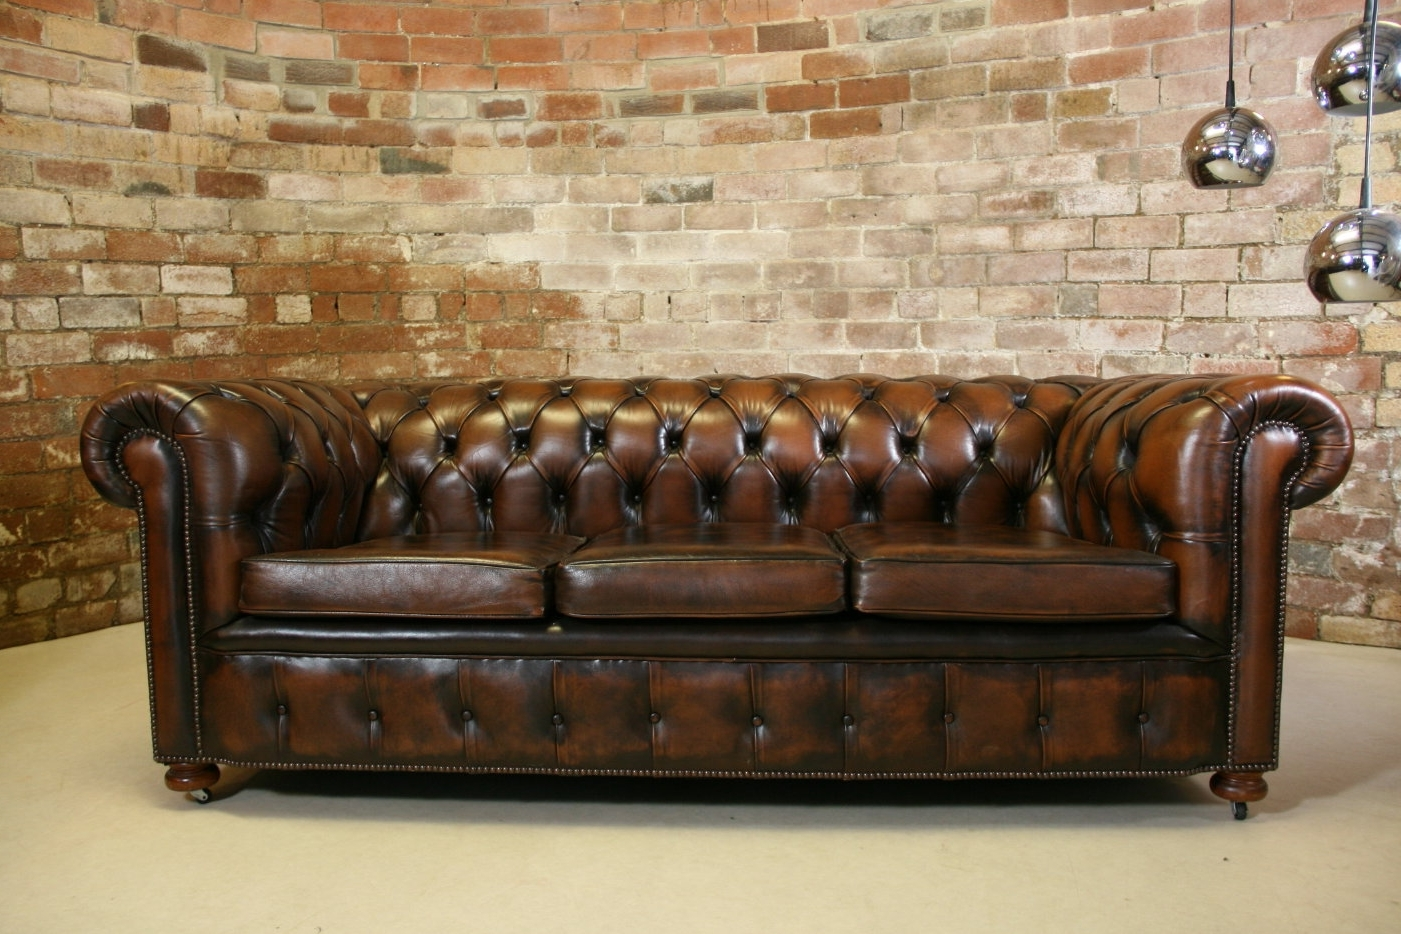 Preferred Leather Chesterfield Sofa — Fabrizio Design : Clean And Bright With Regard To Vintage Chesterfield Sofas (View 2 of 15)